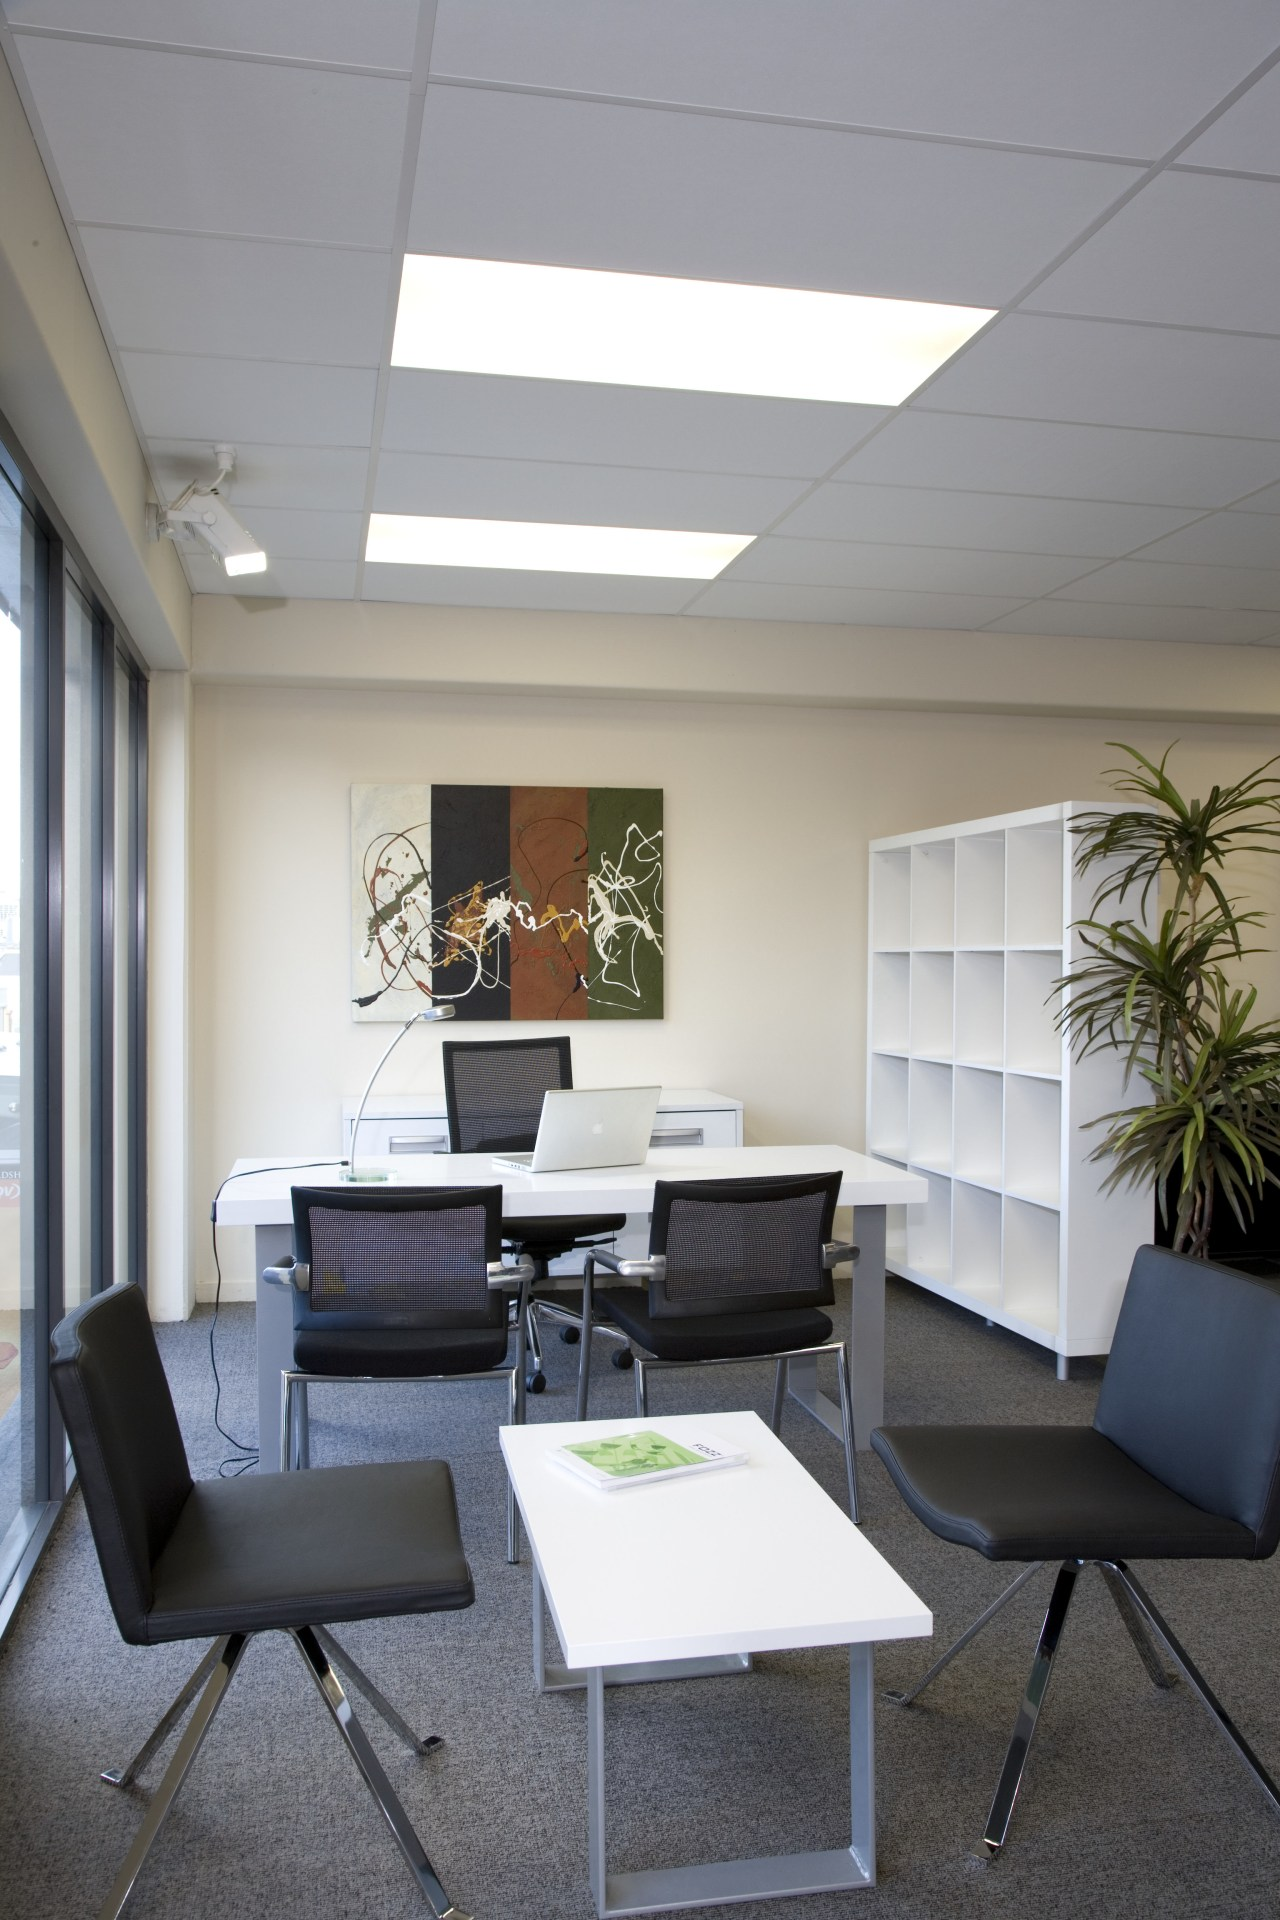 Grey Office chaairs with white laminate tale and ceiling, daylighting, furniture, interior design, office, real estate, table, gray, white